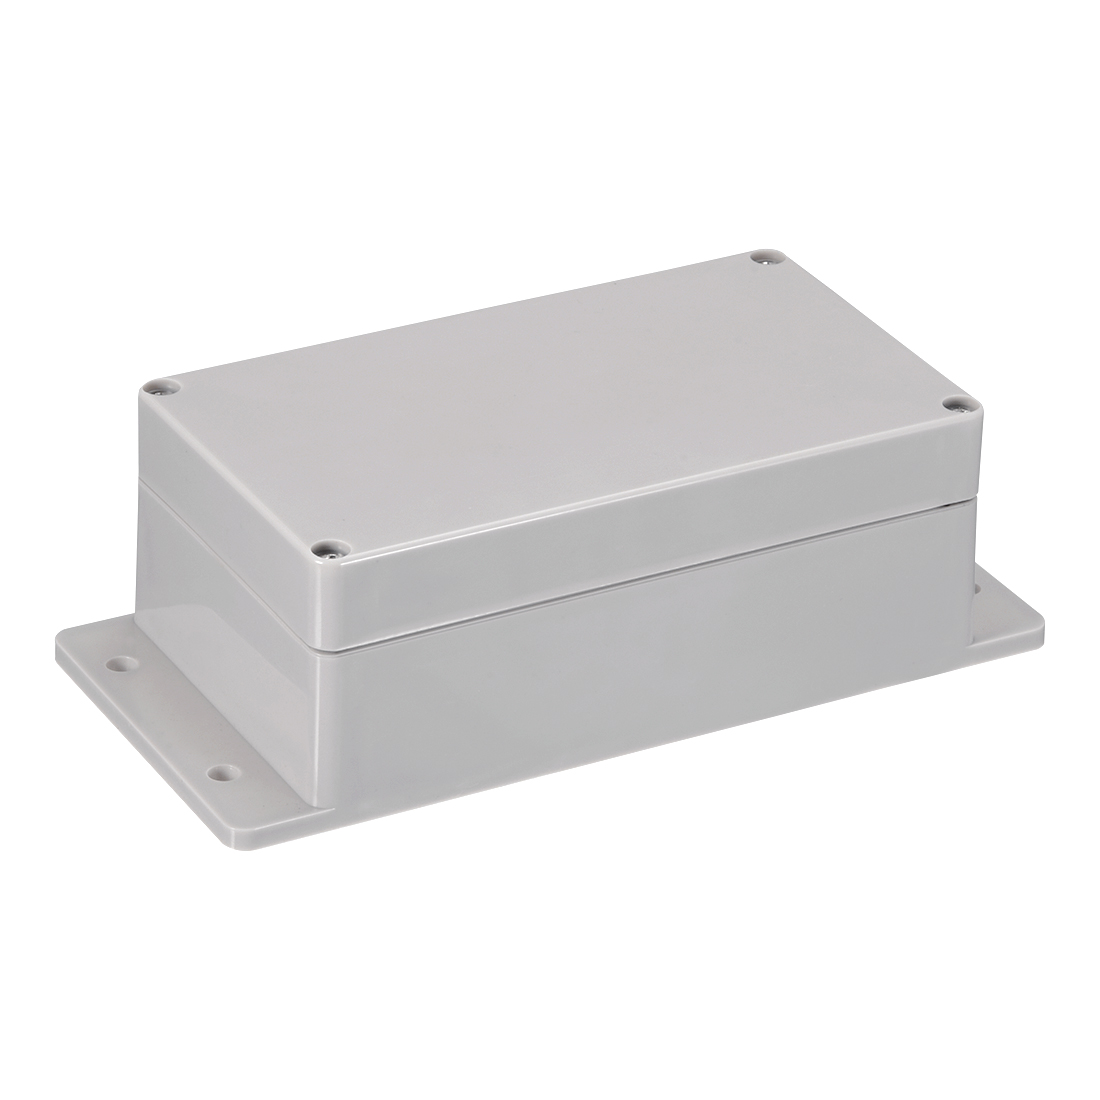 196 x 90 x 60mm Electronic ABS Plastic DIY Junction Box Enclosure Case Gray